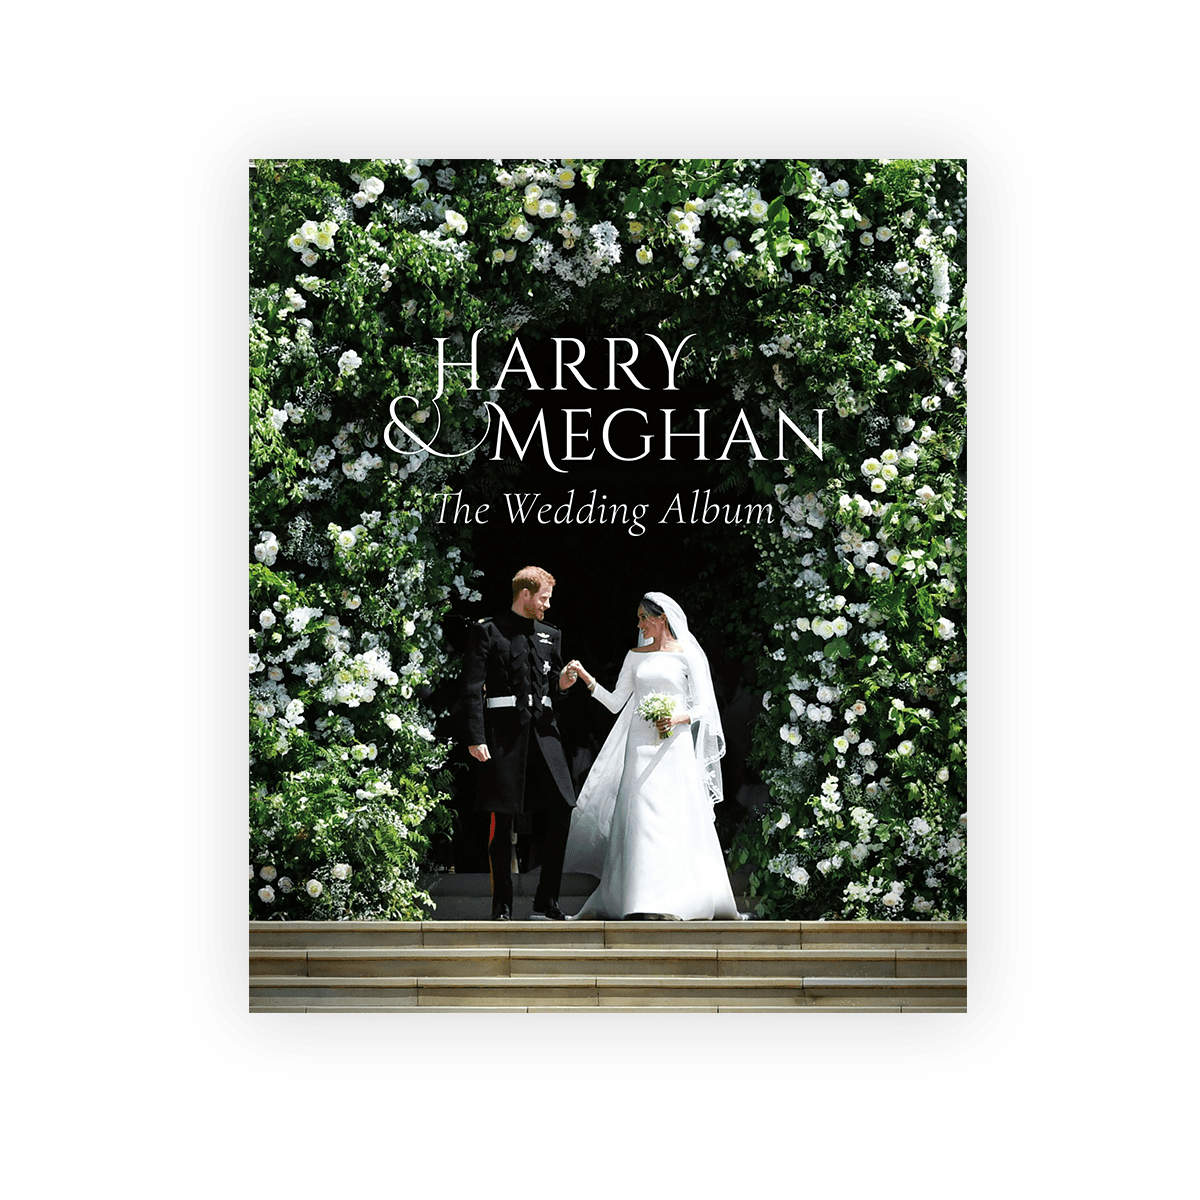 Harry-Meghan-Wedding-Album-DS